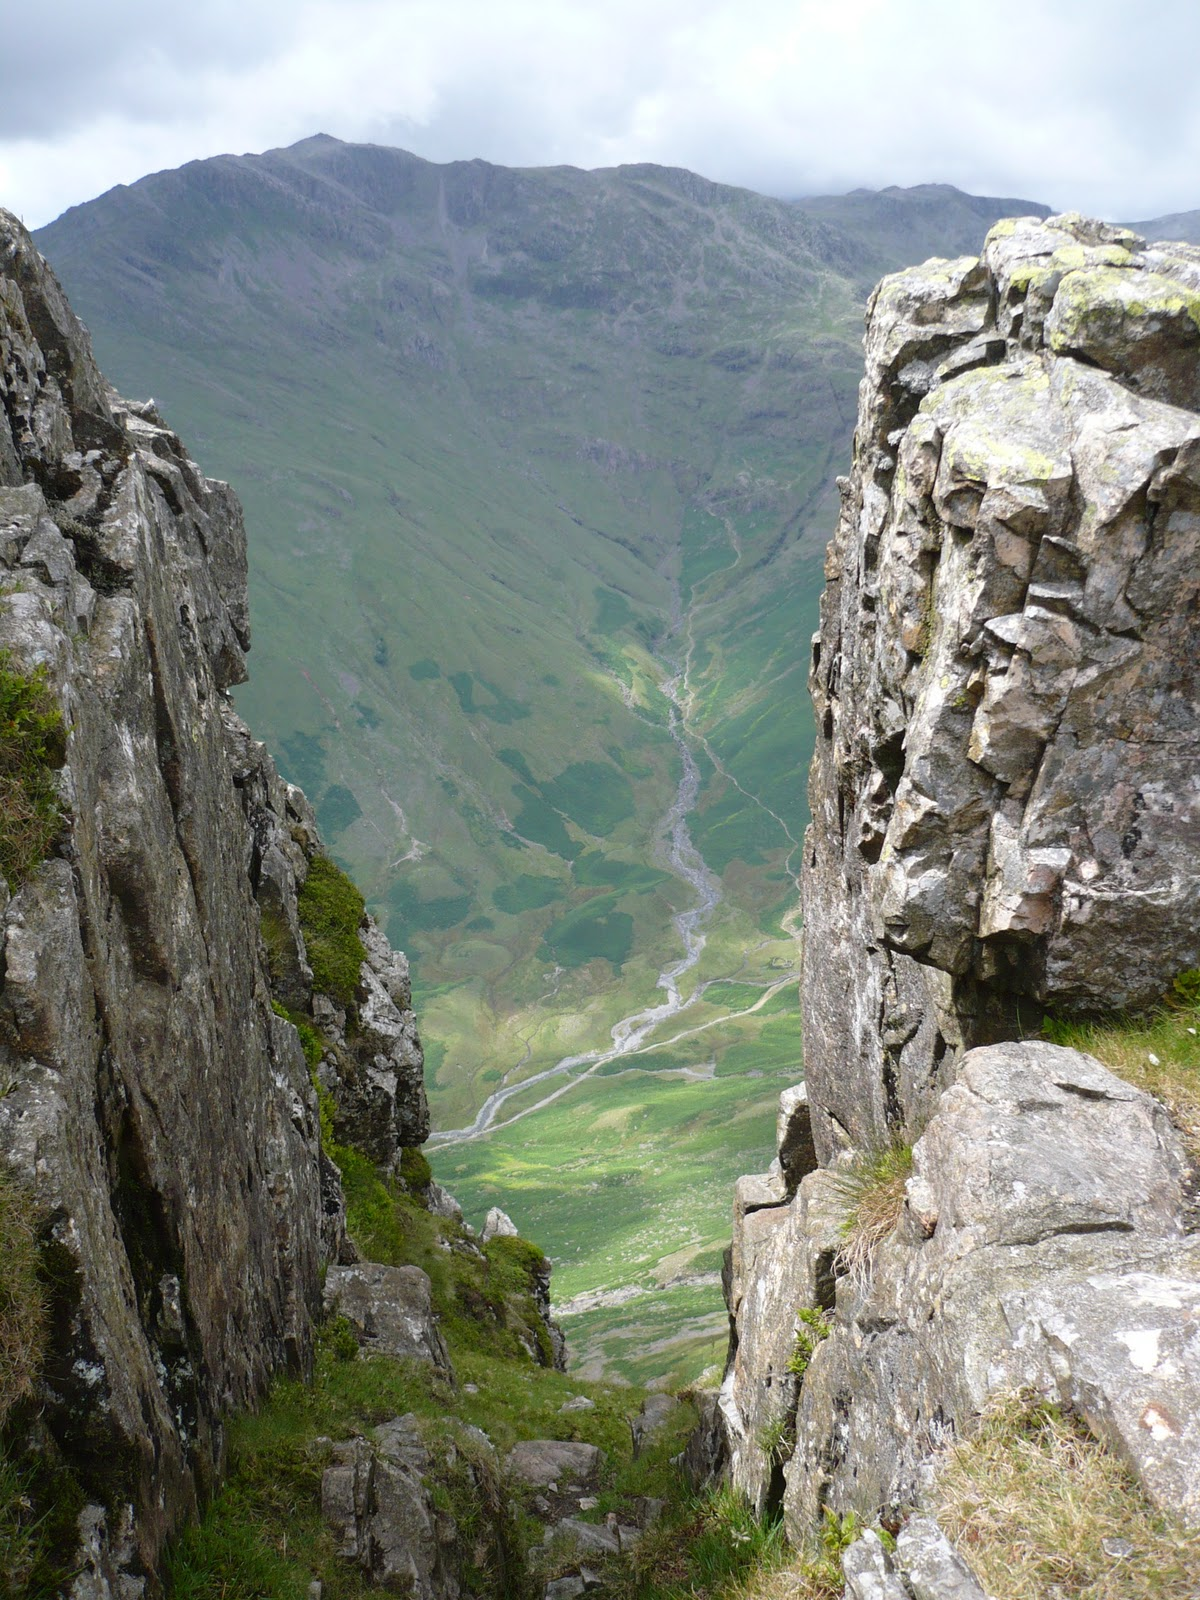 Hartsop hall cottages 171 walking holiday cottages walking - Rossett Gill Across The Valley From Pike O Stickle